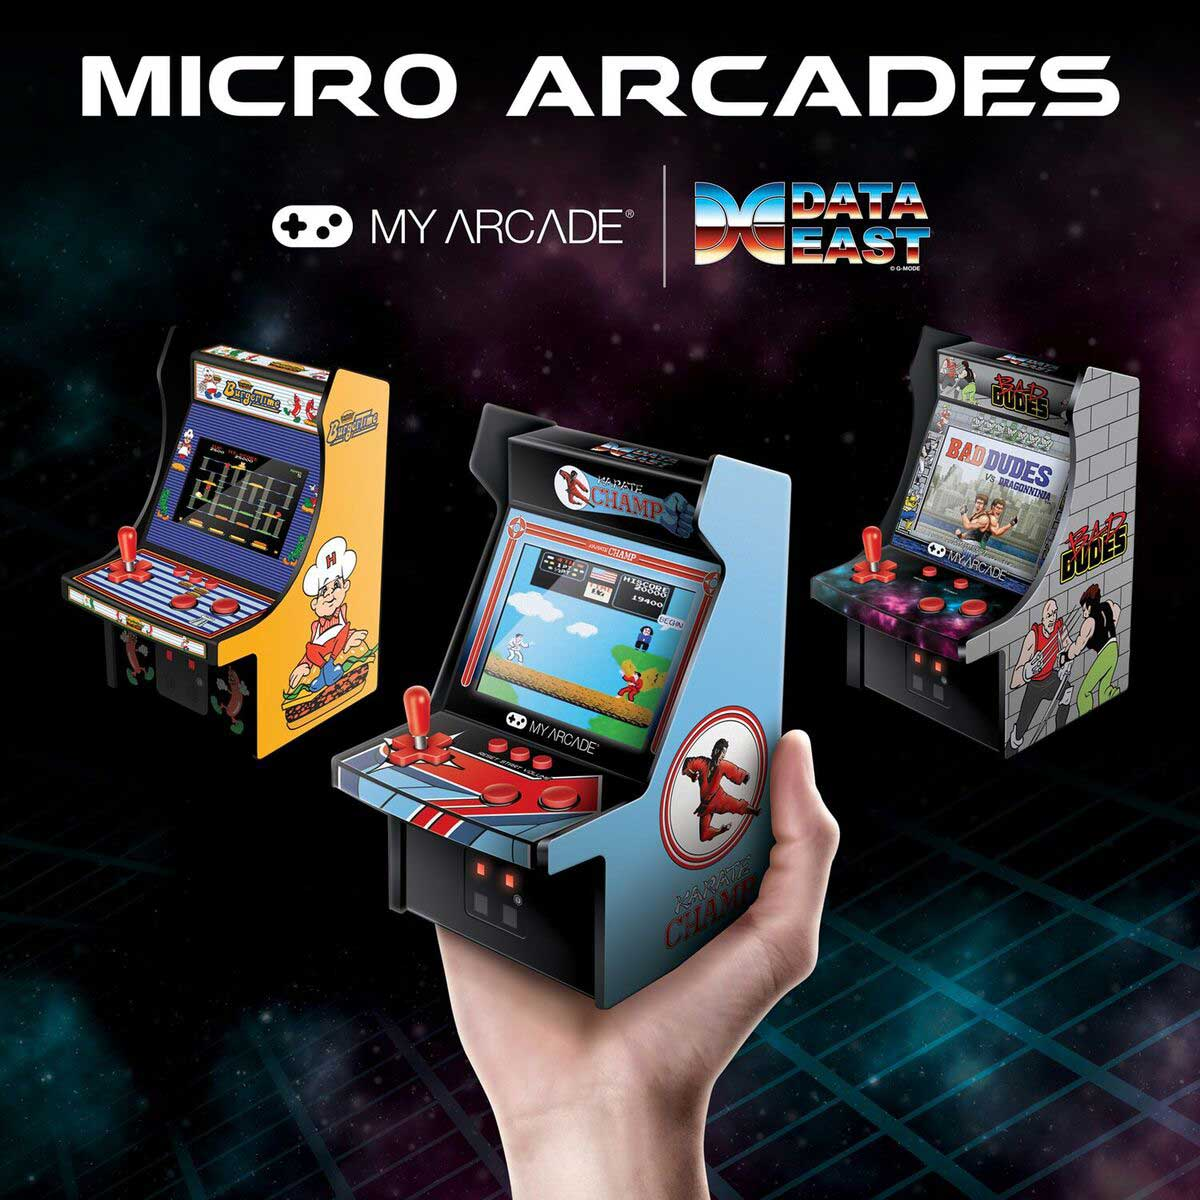 MY-ARCADE-data-east